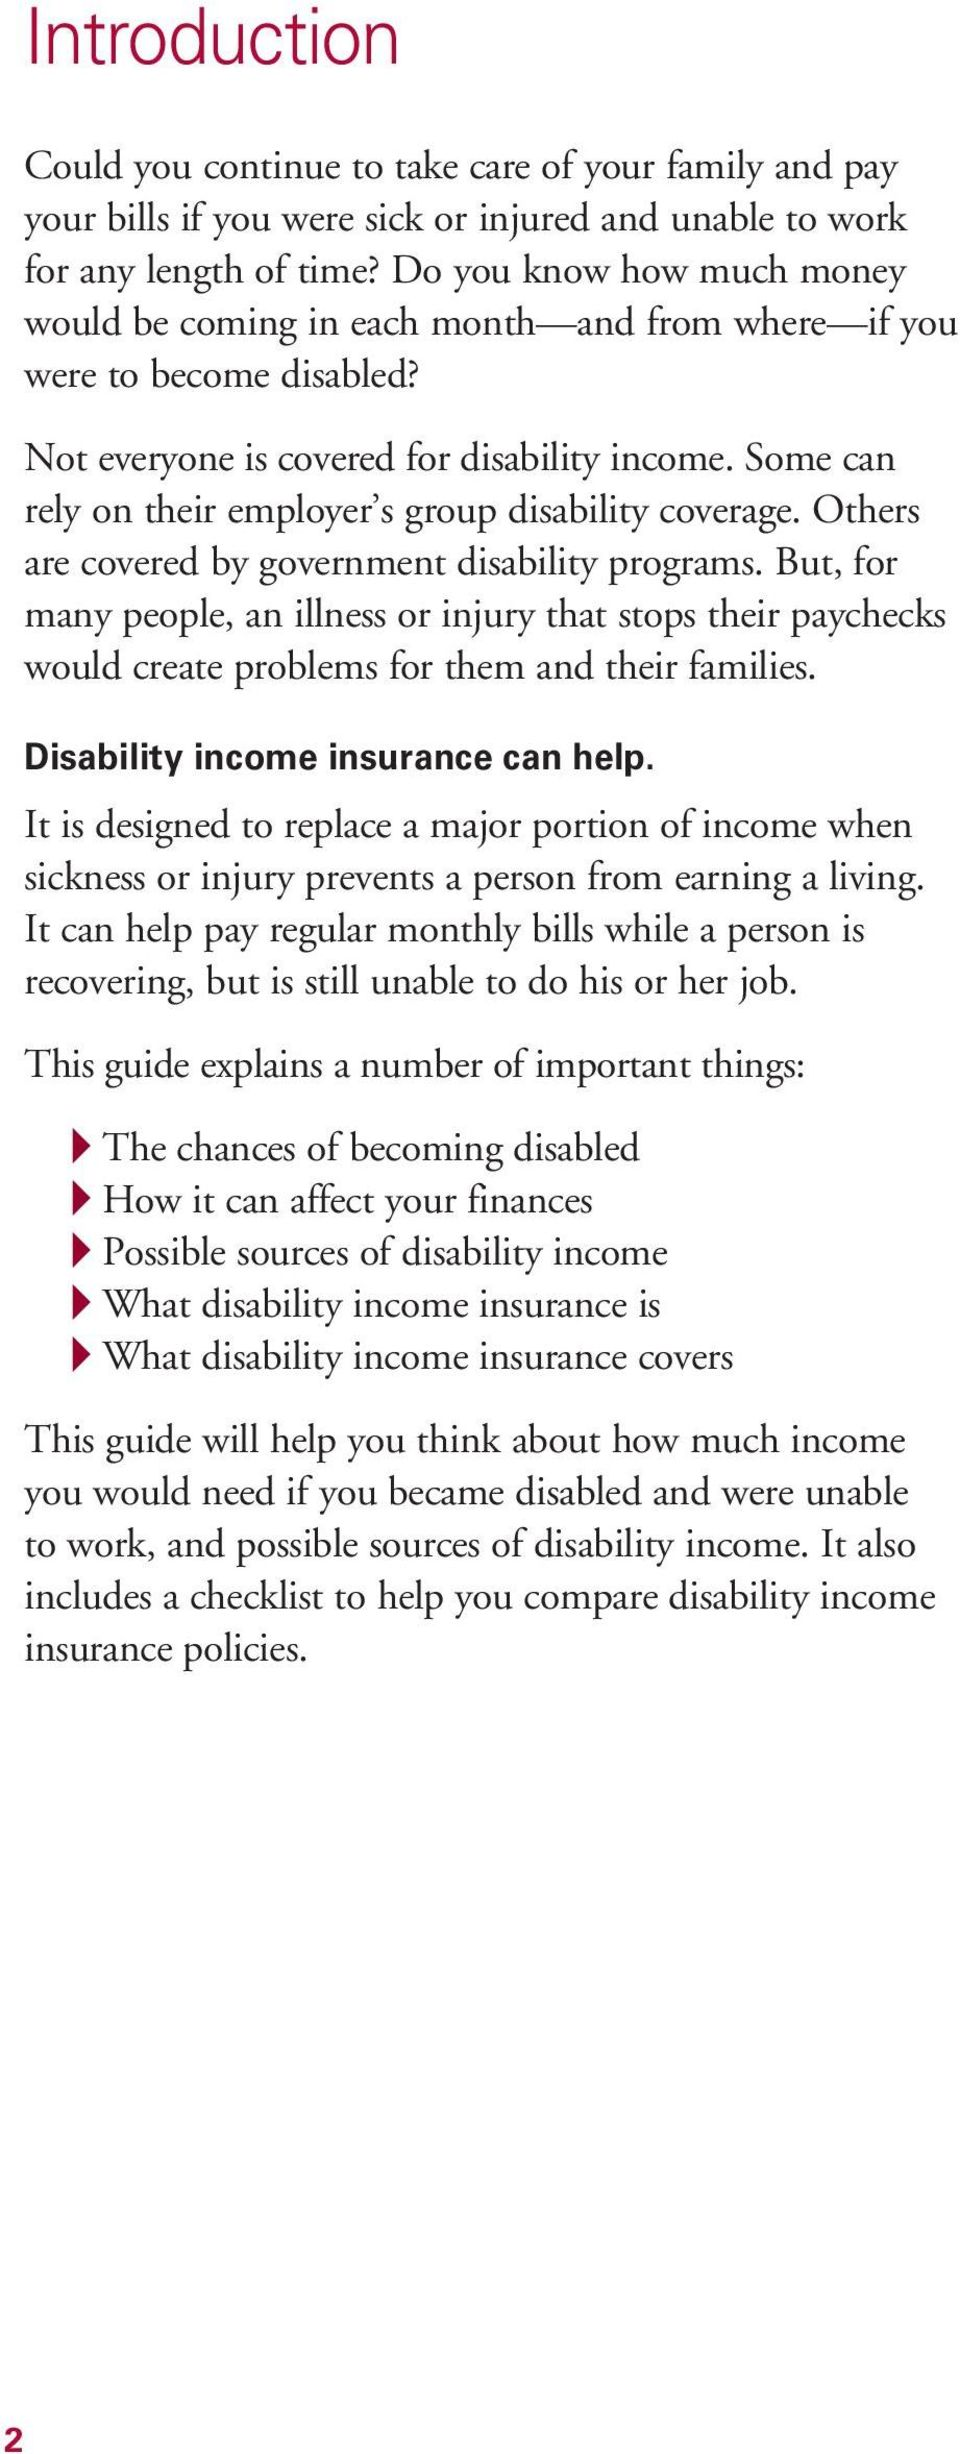 Some can rely on their employer s group disability coverage. Others are covered by government disability programs.